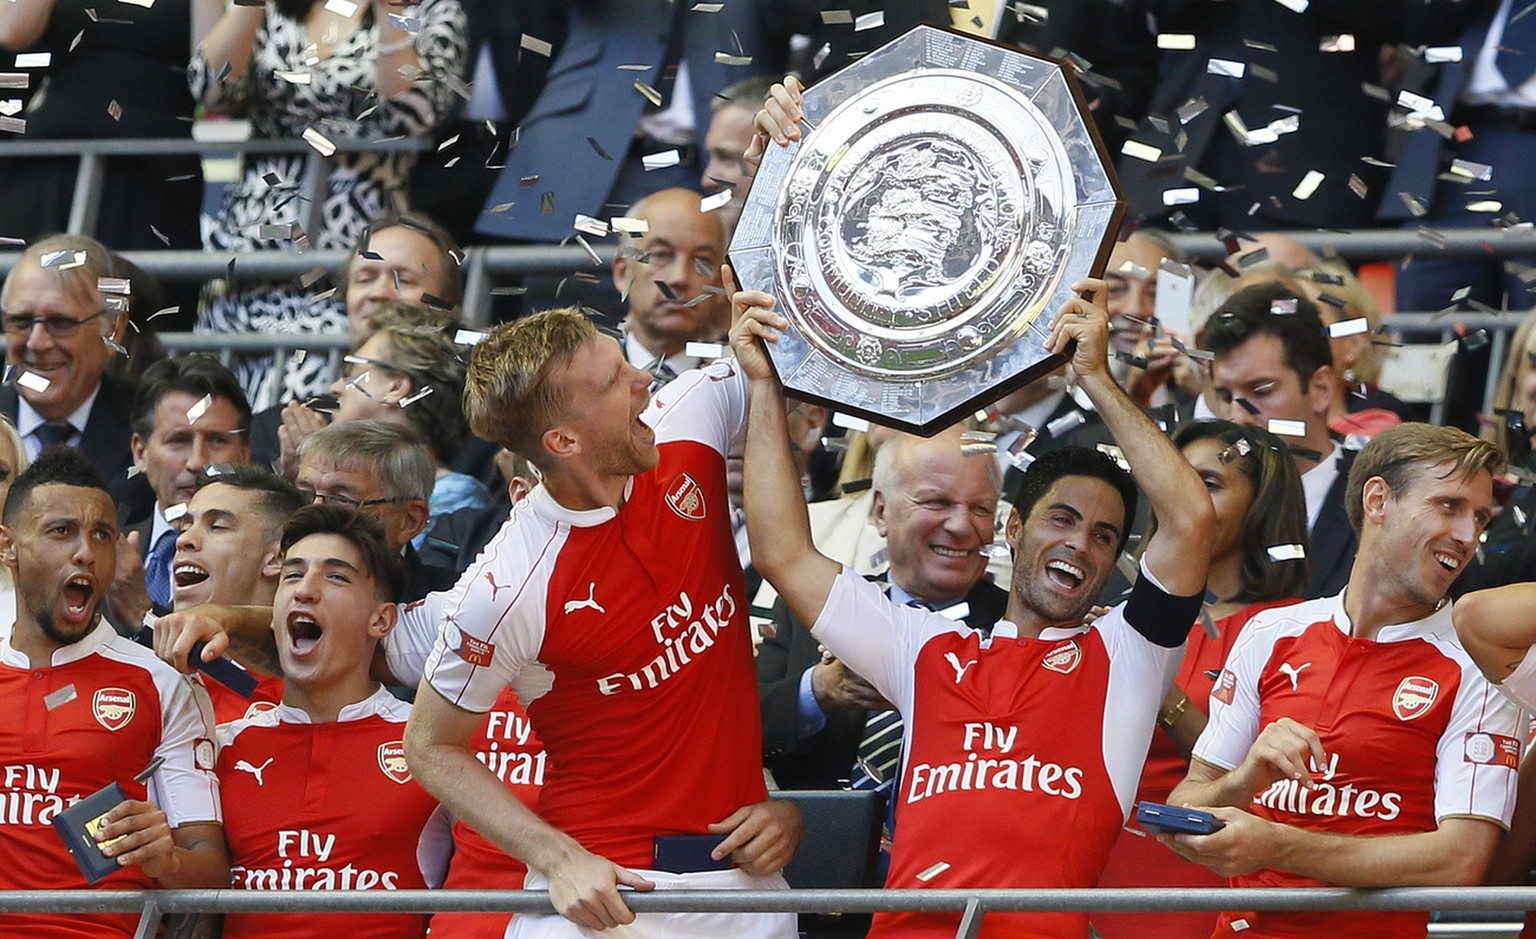 Arsenal's captain Per Mertesacker, centre, holds the trophy with Mikel Arteta, second right, after winning the English Community Shield soccer match between Arsenal and Chelsea at Wembley Stadium in London, Sunday, Aug. 2, 2015. Arsenal won the match 1-0. (AP Photo/Kirsty Wigglesworth)